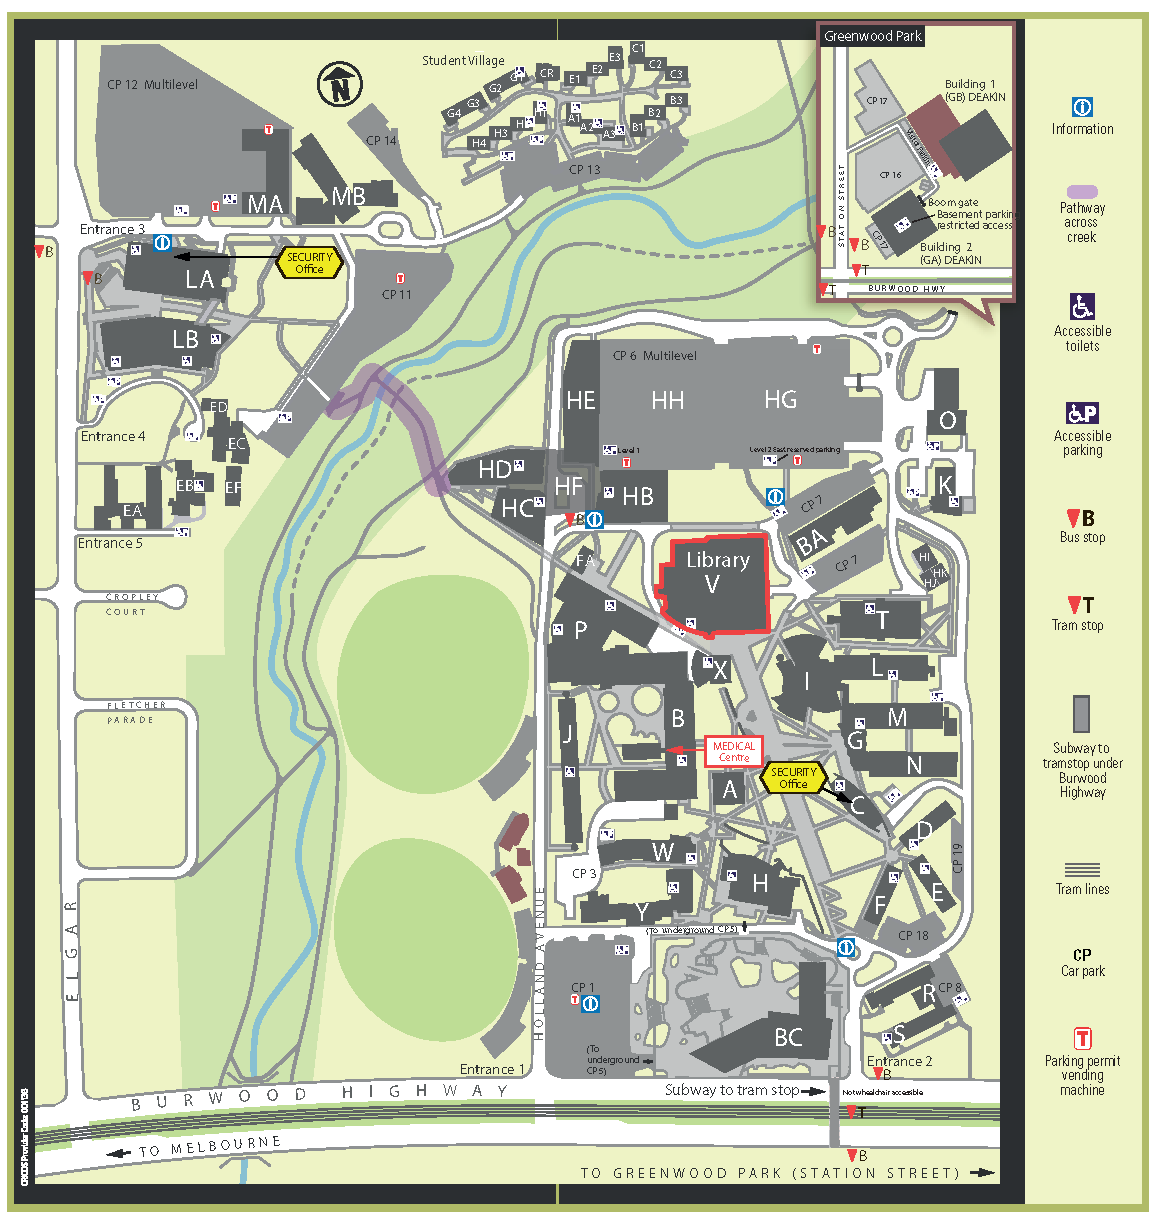 Deakin University Map Deakin University Map | compressportnederland Deakin University Map